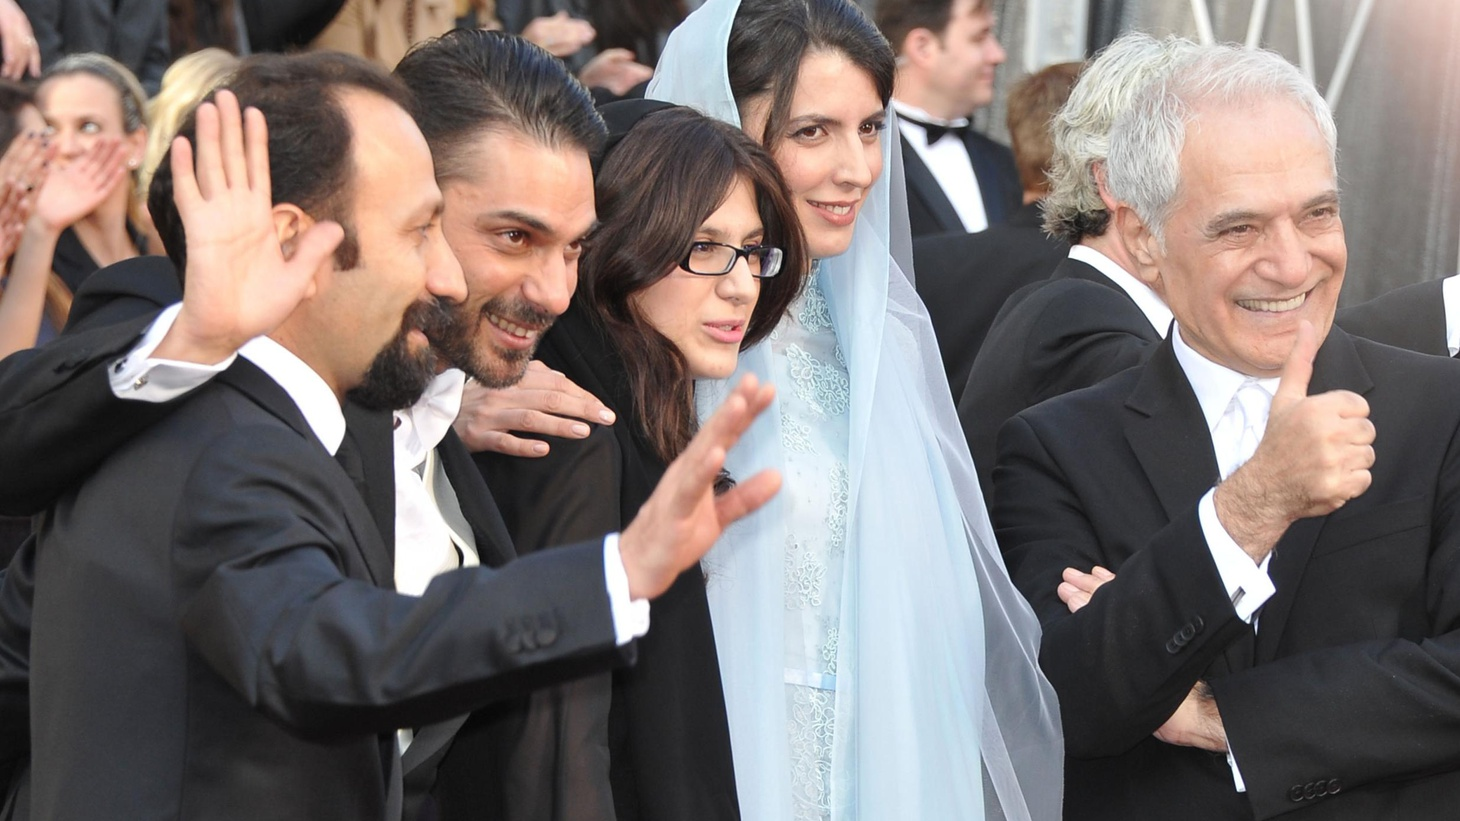 The Best Foreign Language Film was shot by Iranians in Iran, but the biggest Oscar celebrations may have been among expats. We hear about the reception in Iran and LA.